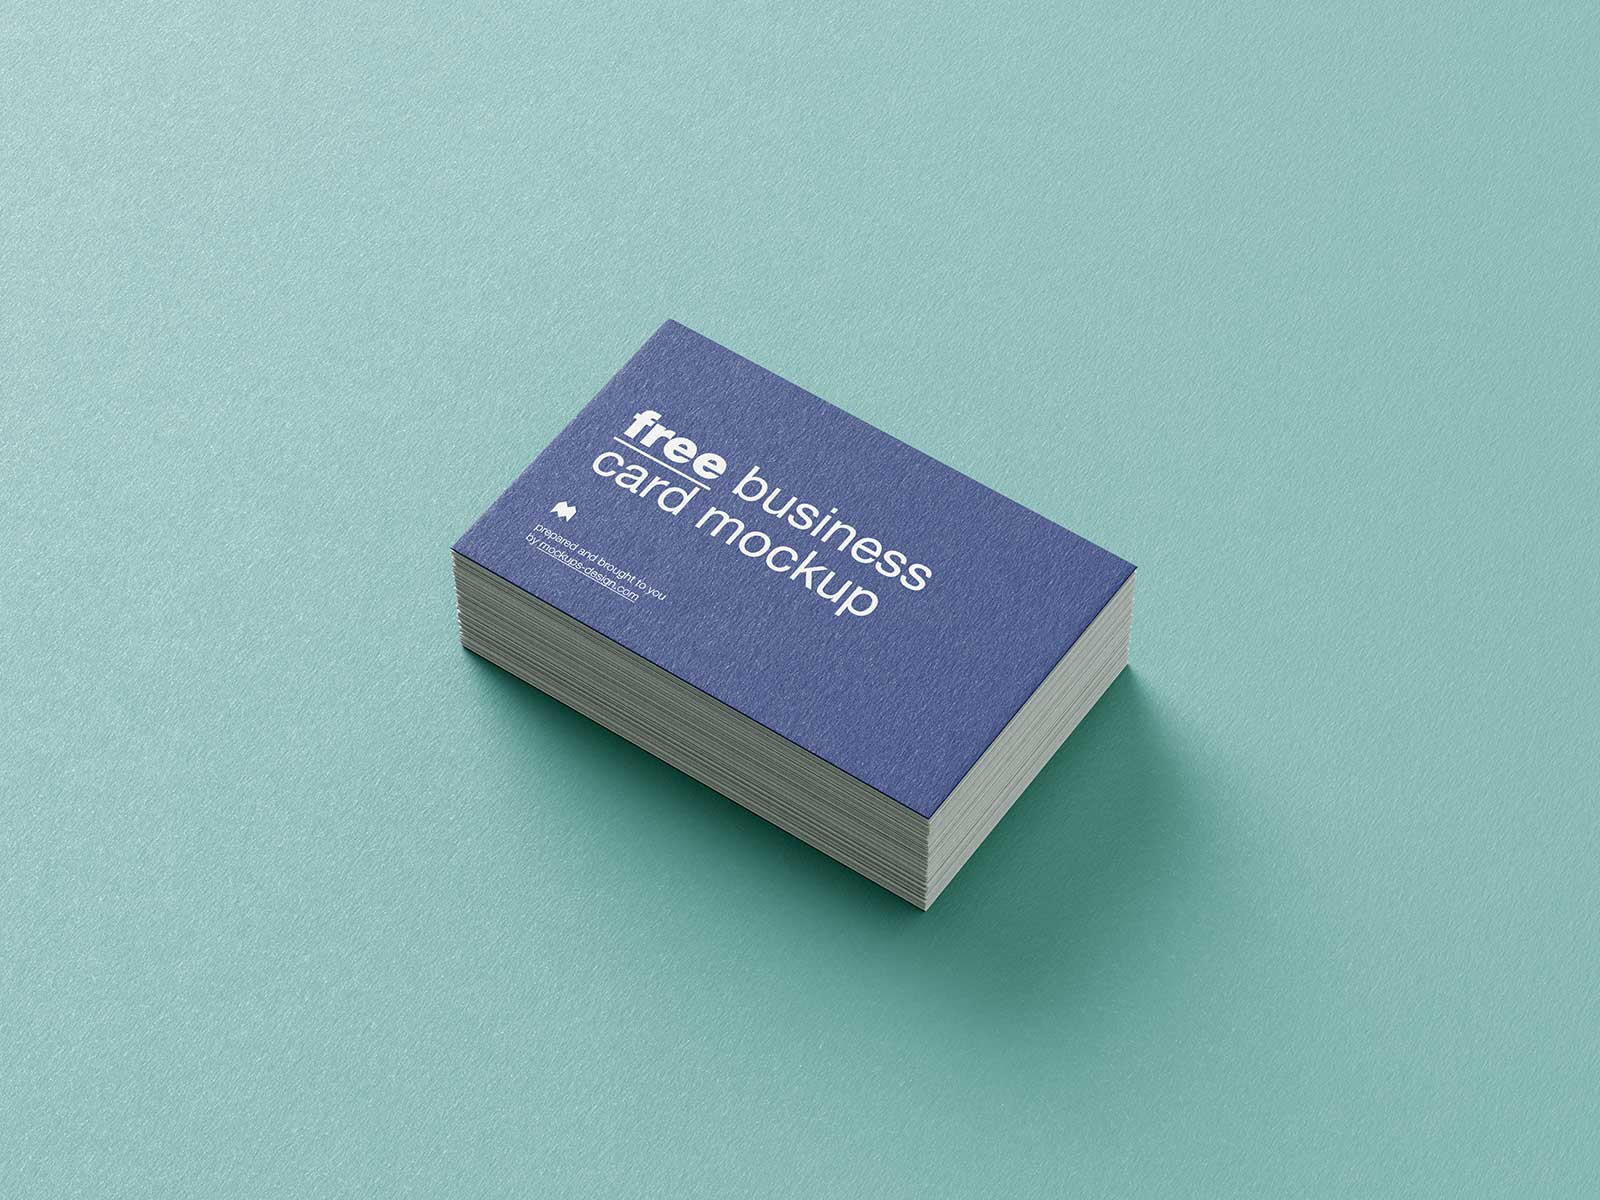 Free Textured Business Card Mockup PSD Set (1)